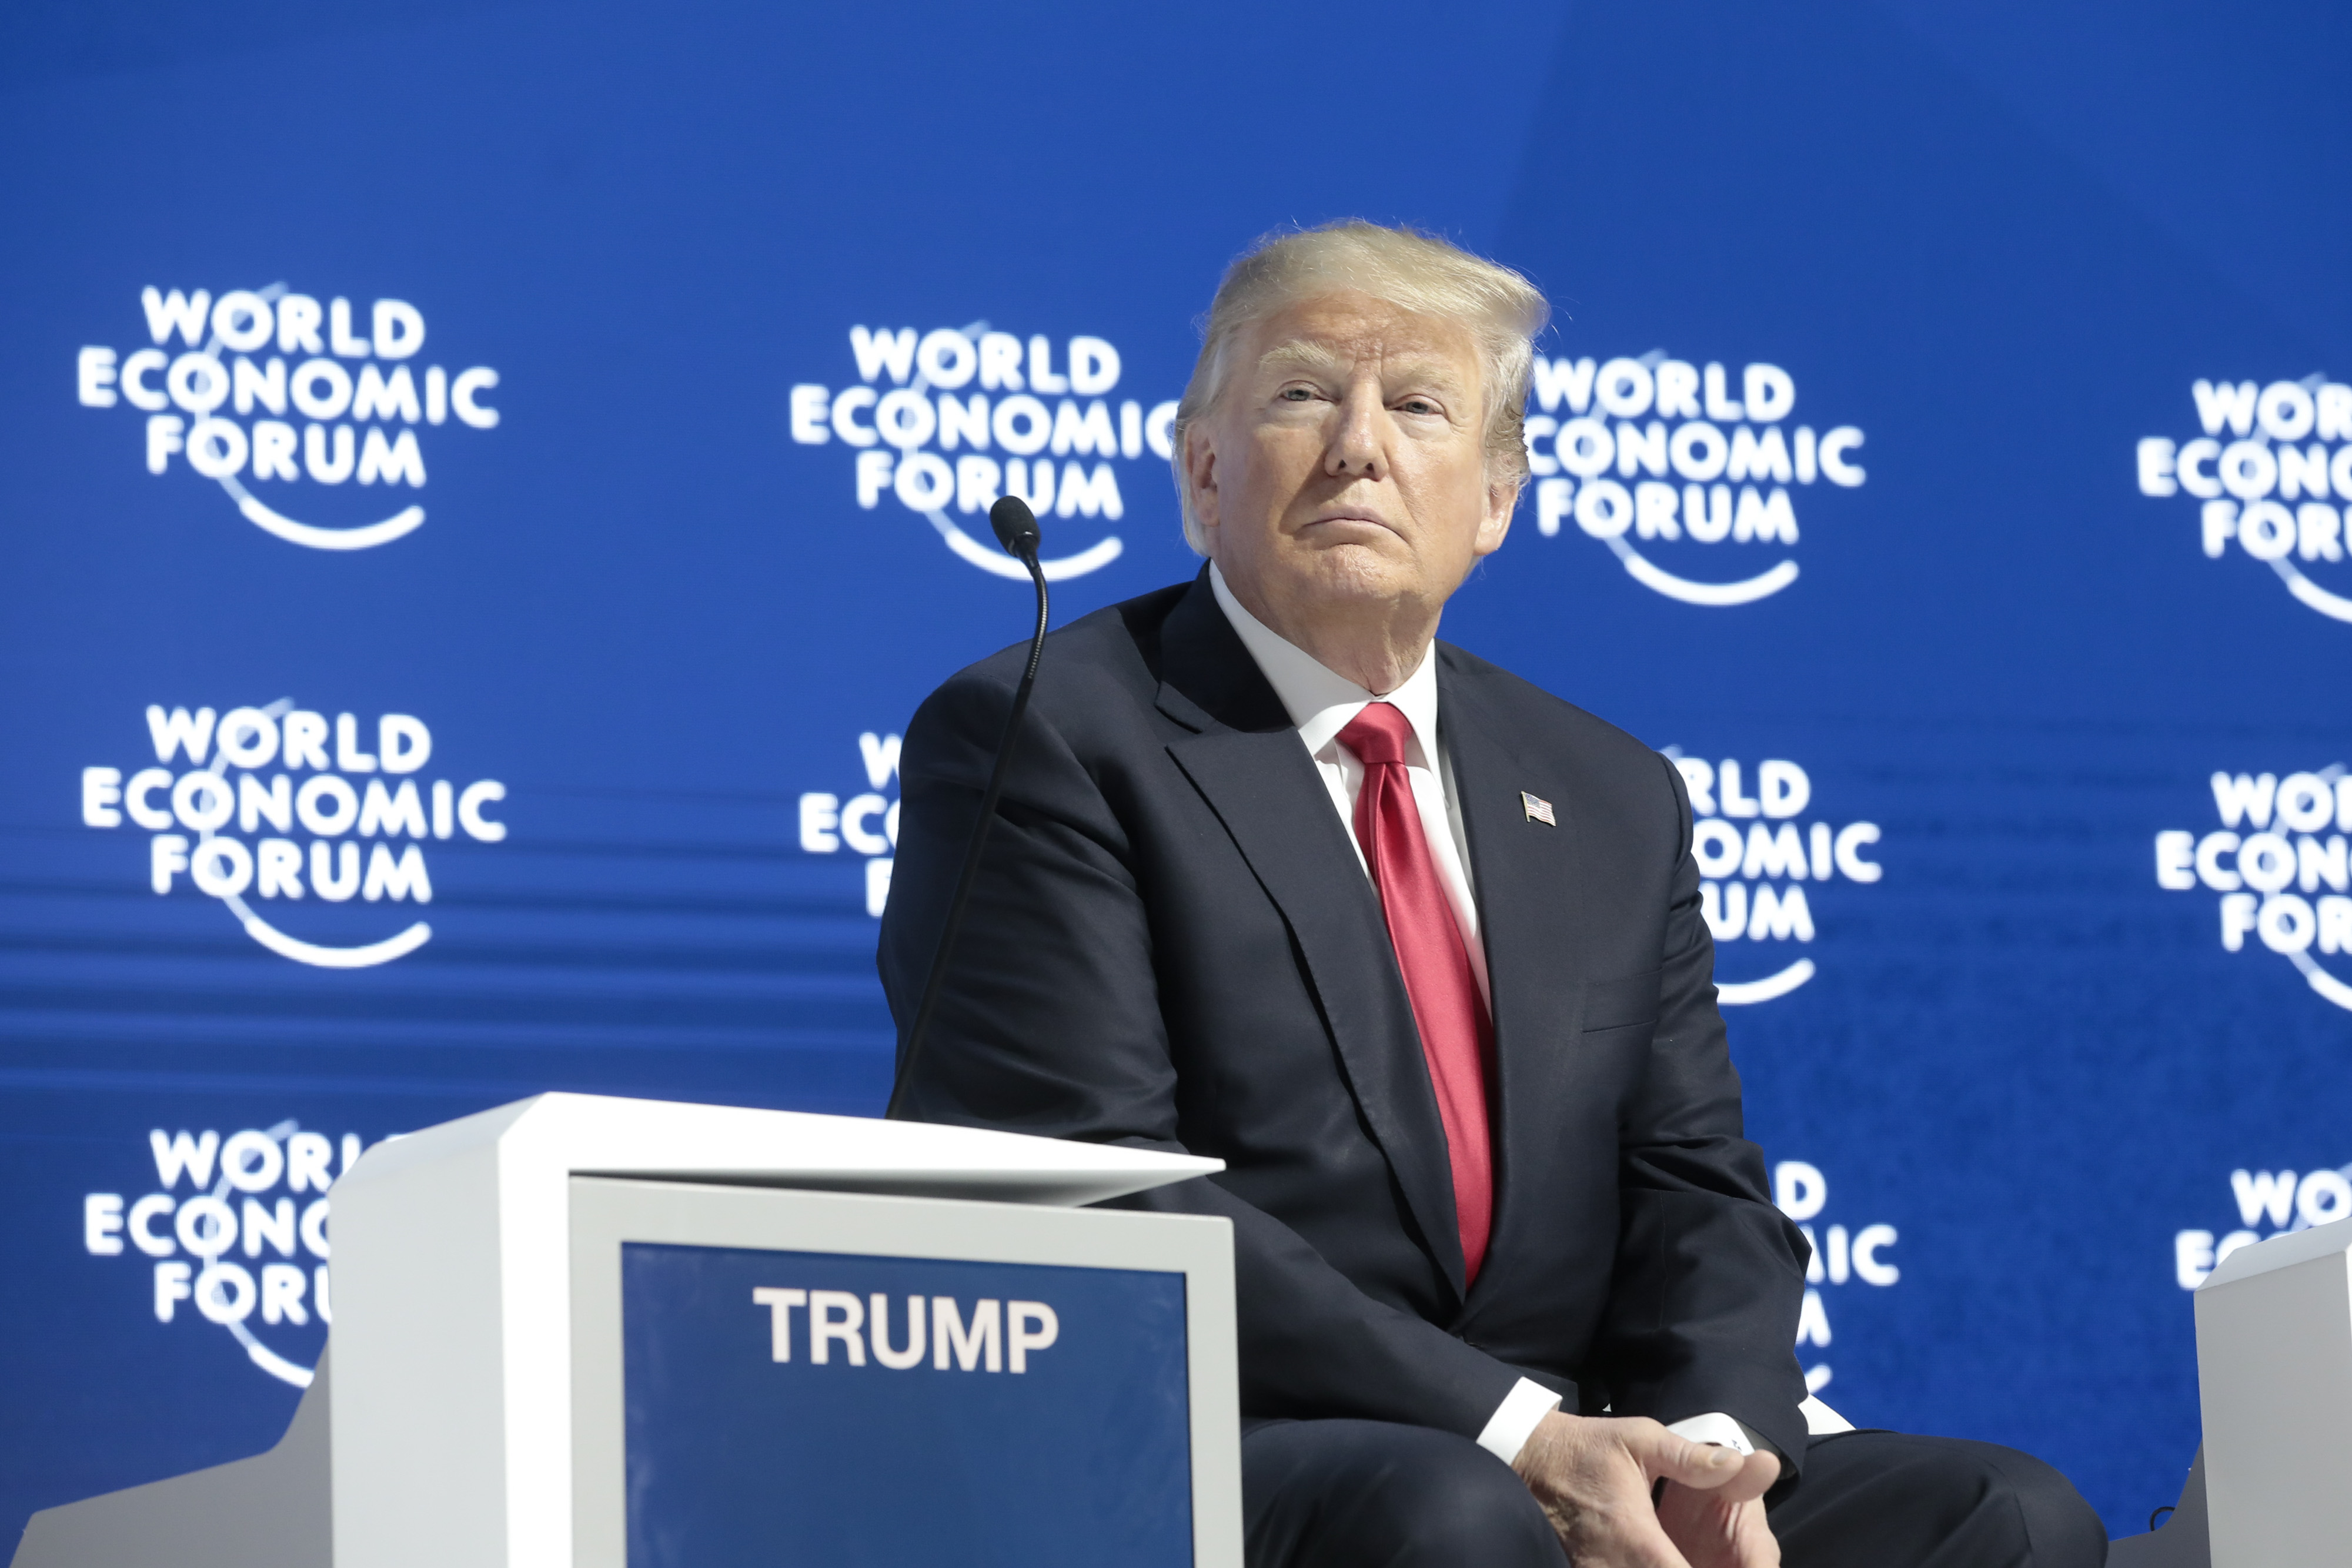 President Donald Trump looks on ahead of a special address on the closing day of the World Economic Forum in Davos, Switzerland, on Friday, Jan. 26, 2018. (Getty)